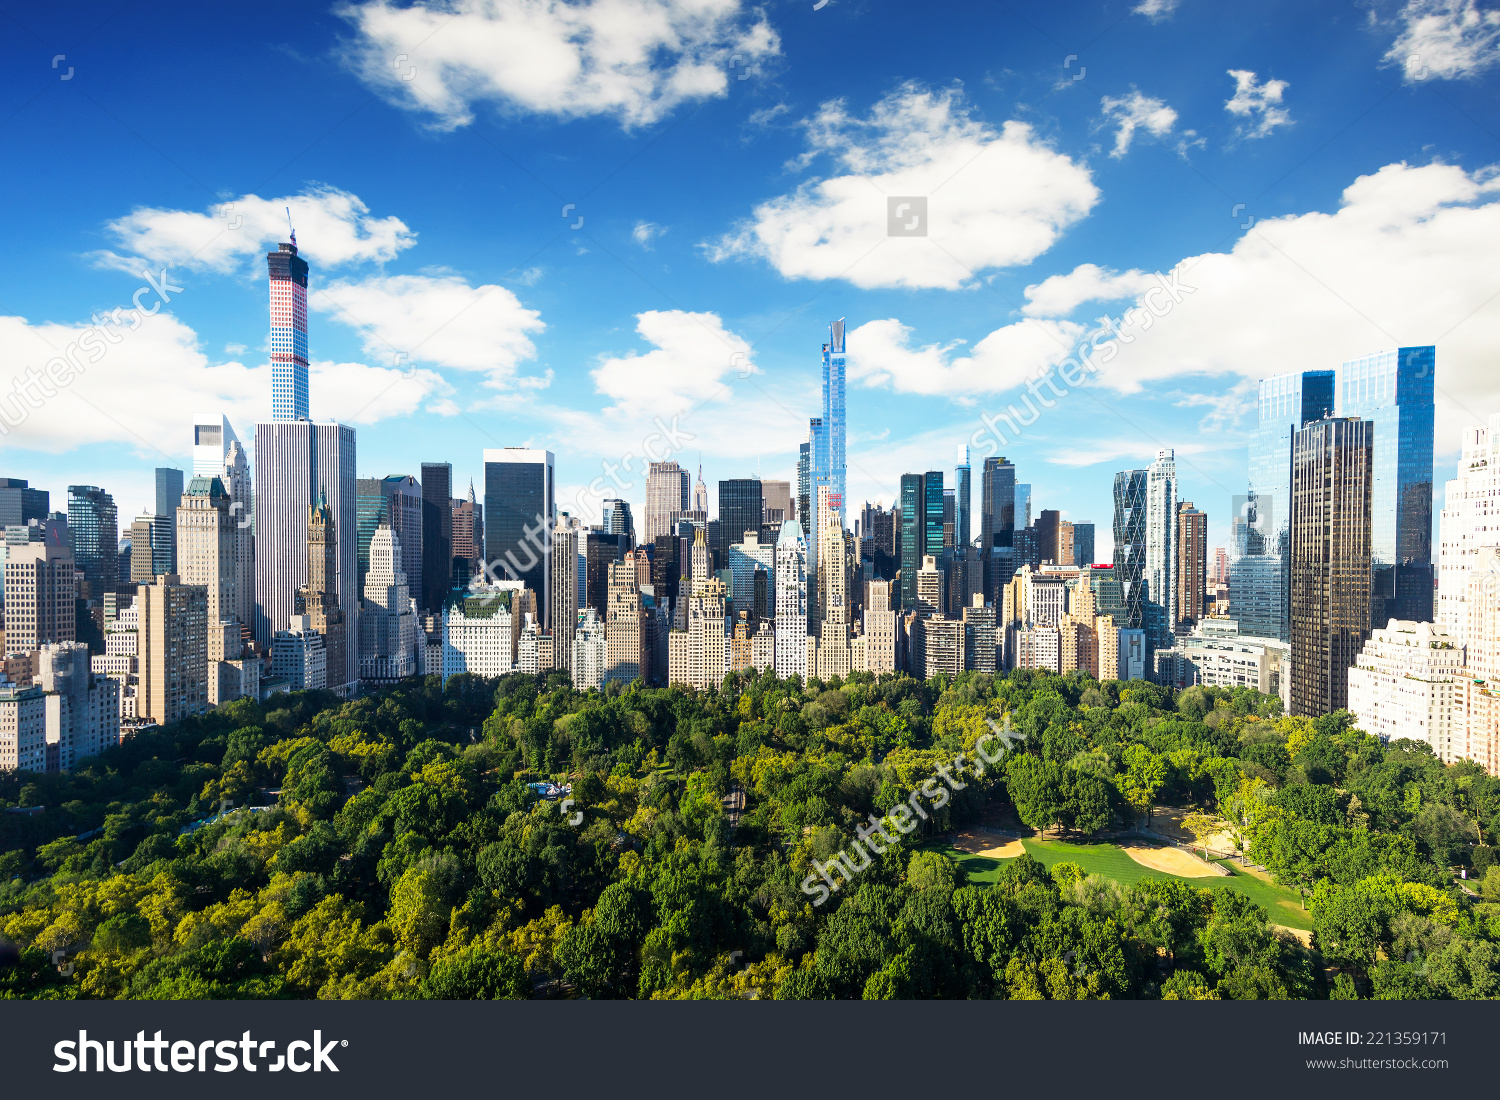 New York City Central Park View Stock Photo 221359171.